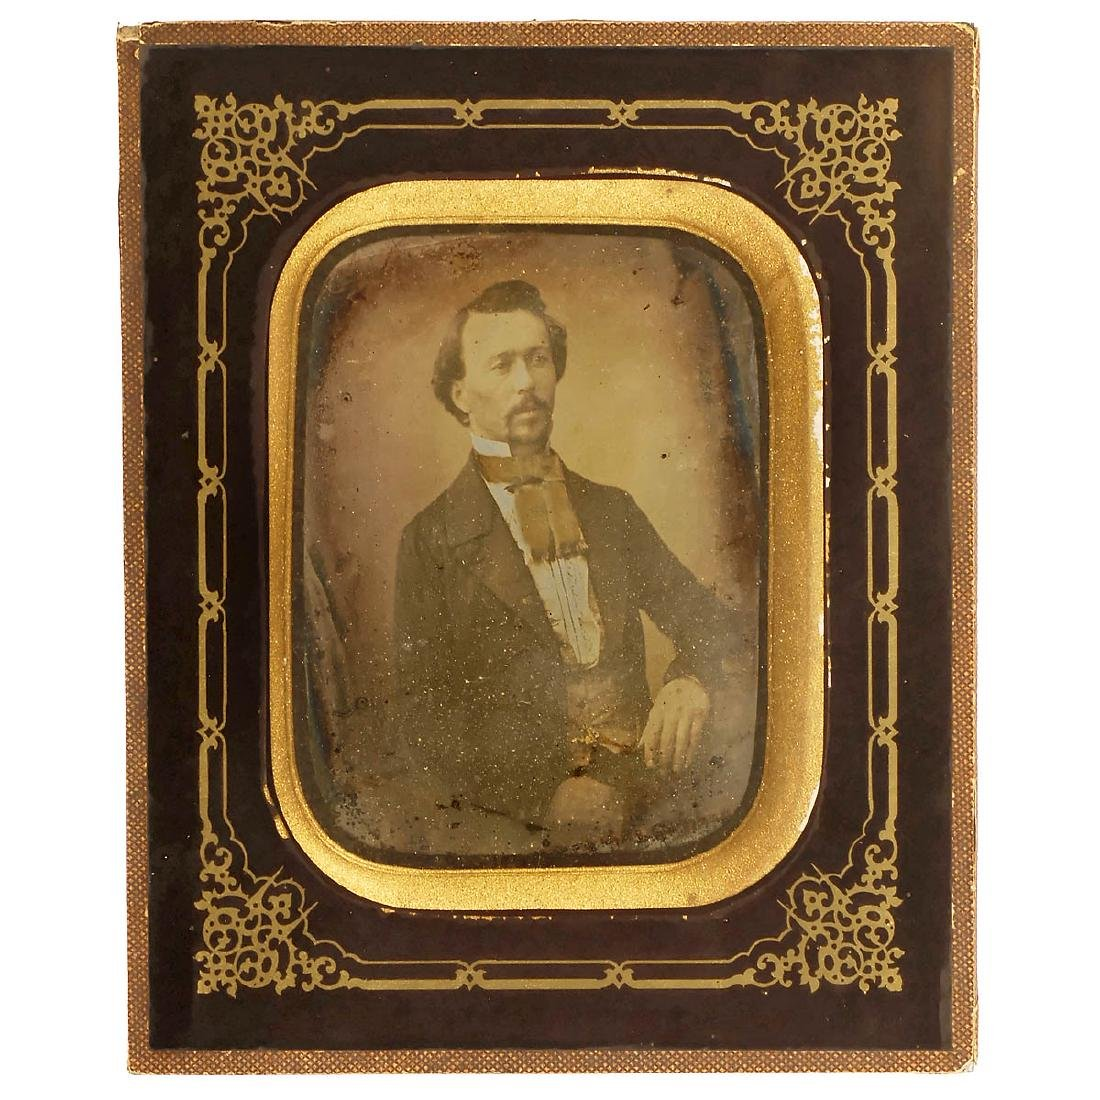 Daguerreotype by Chabrol, Lyon, c. 1845-50